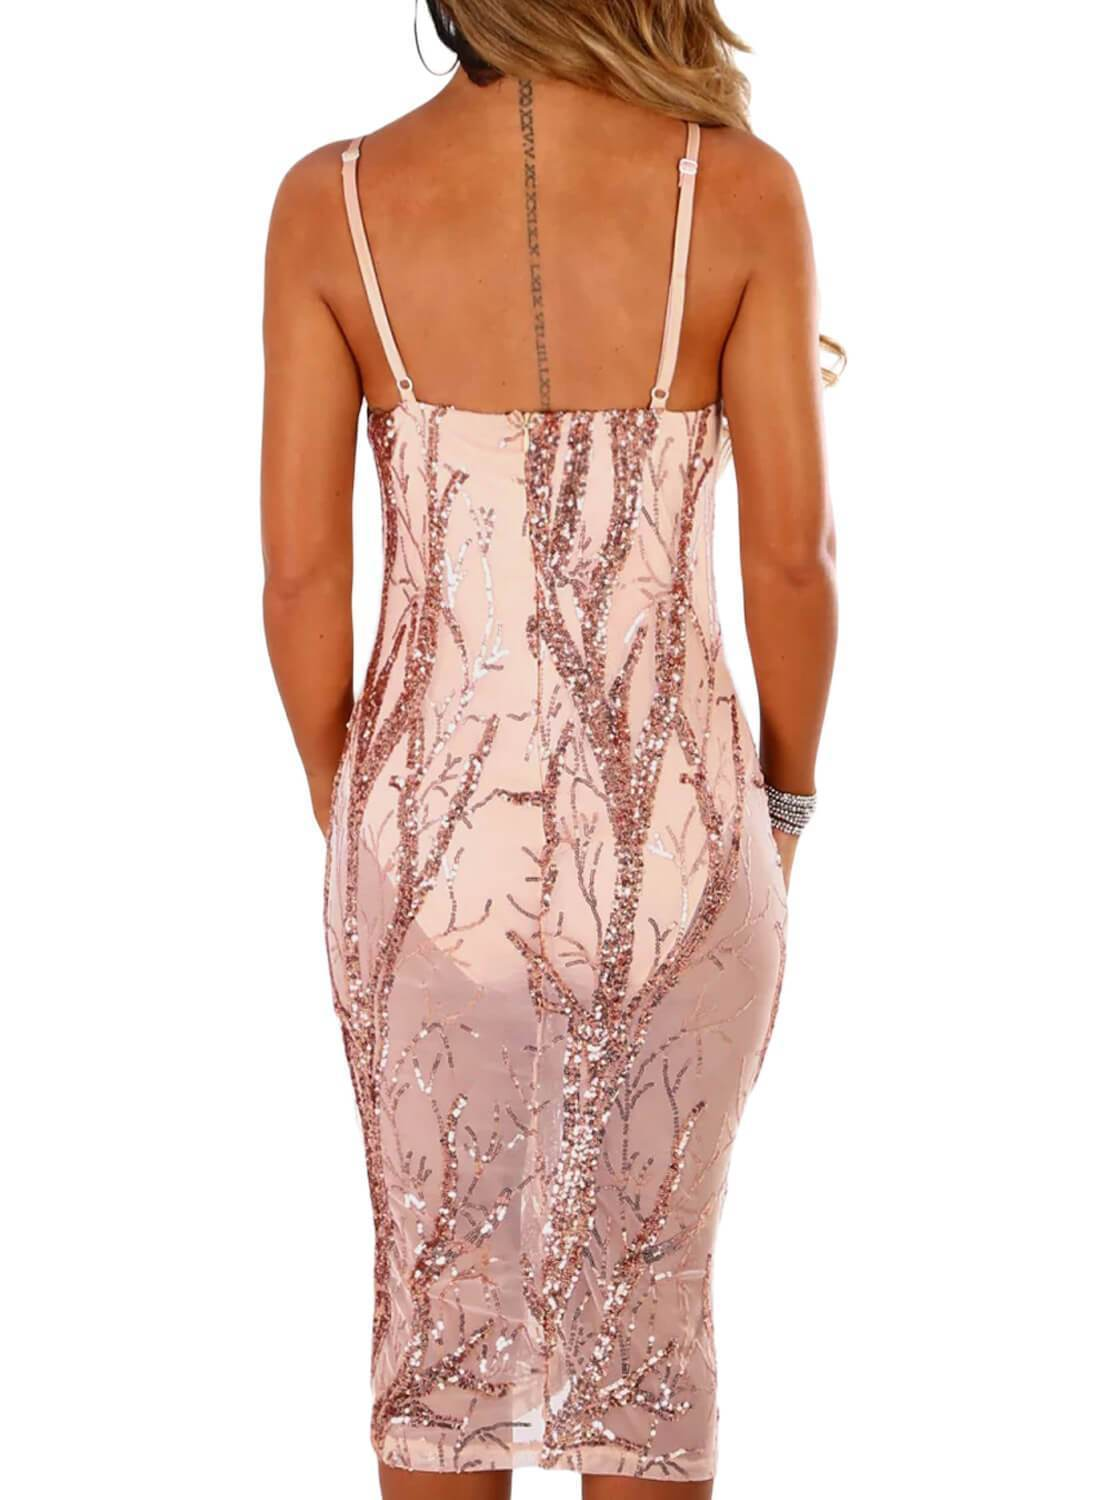 Sheer Sequin Midi Bodysuit Dress